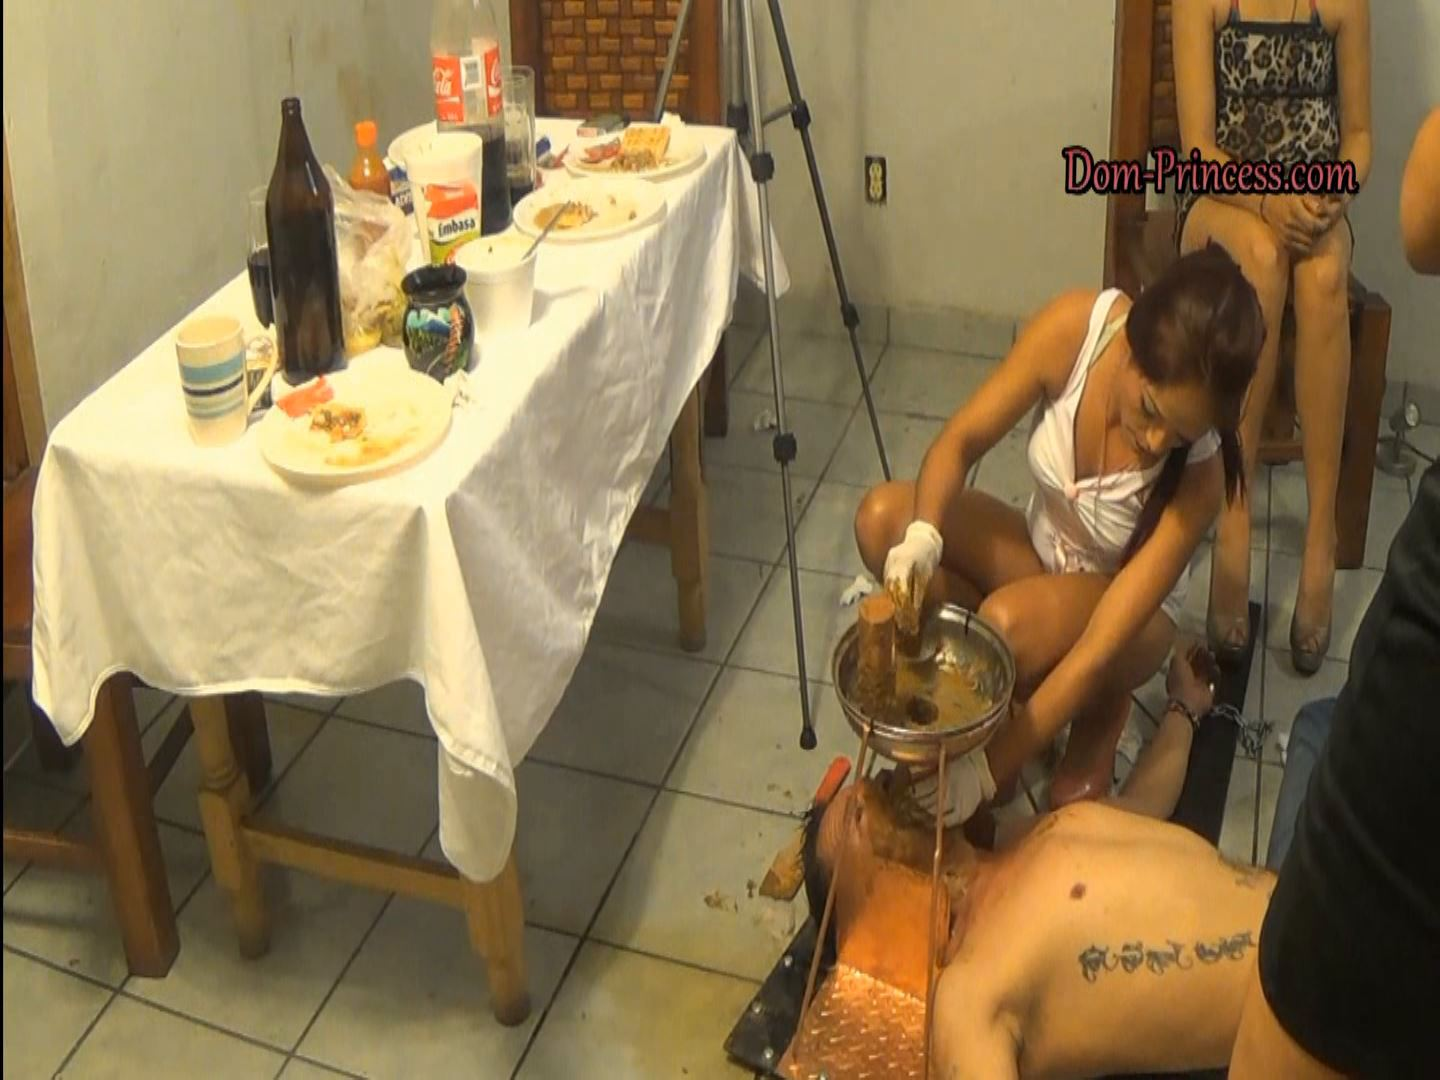 [DOM-PRINCESS] Toilet Mouth High Pressure System Part 7 The Feeding [FULL HD][1080p][WMV]